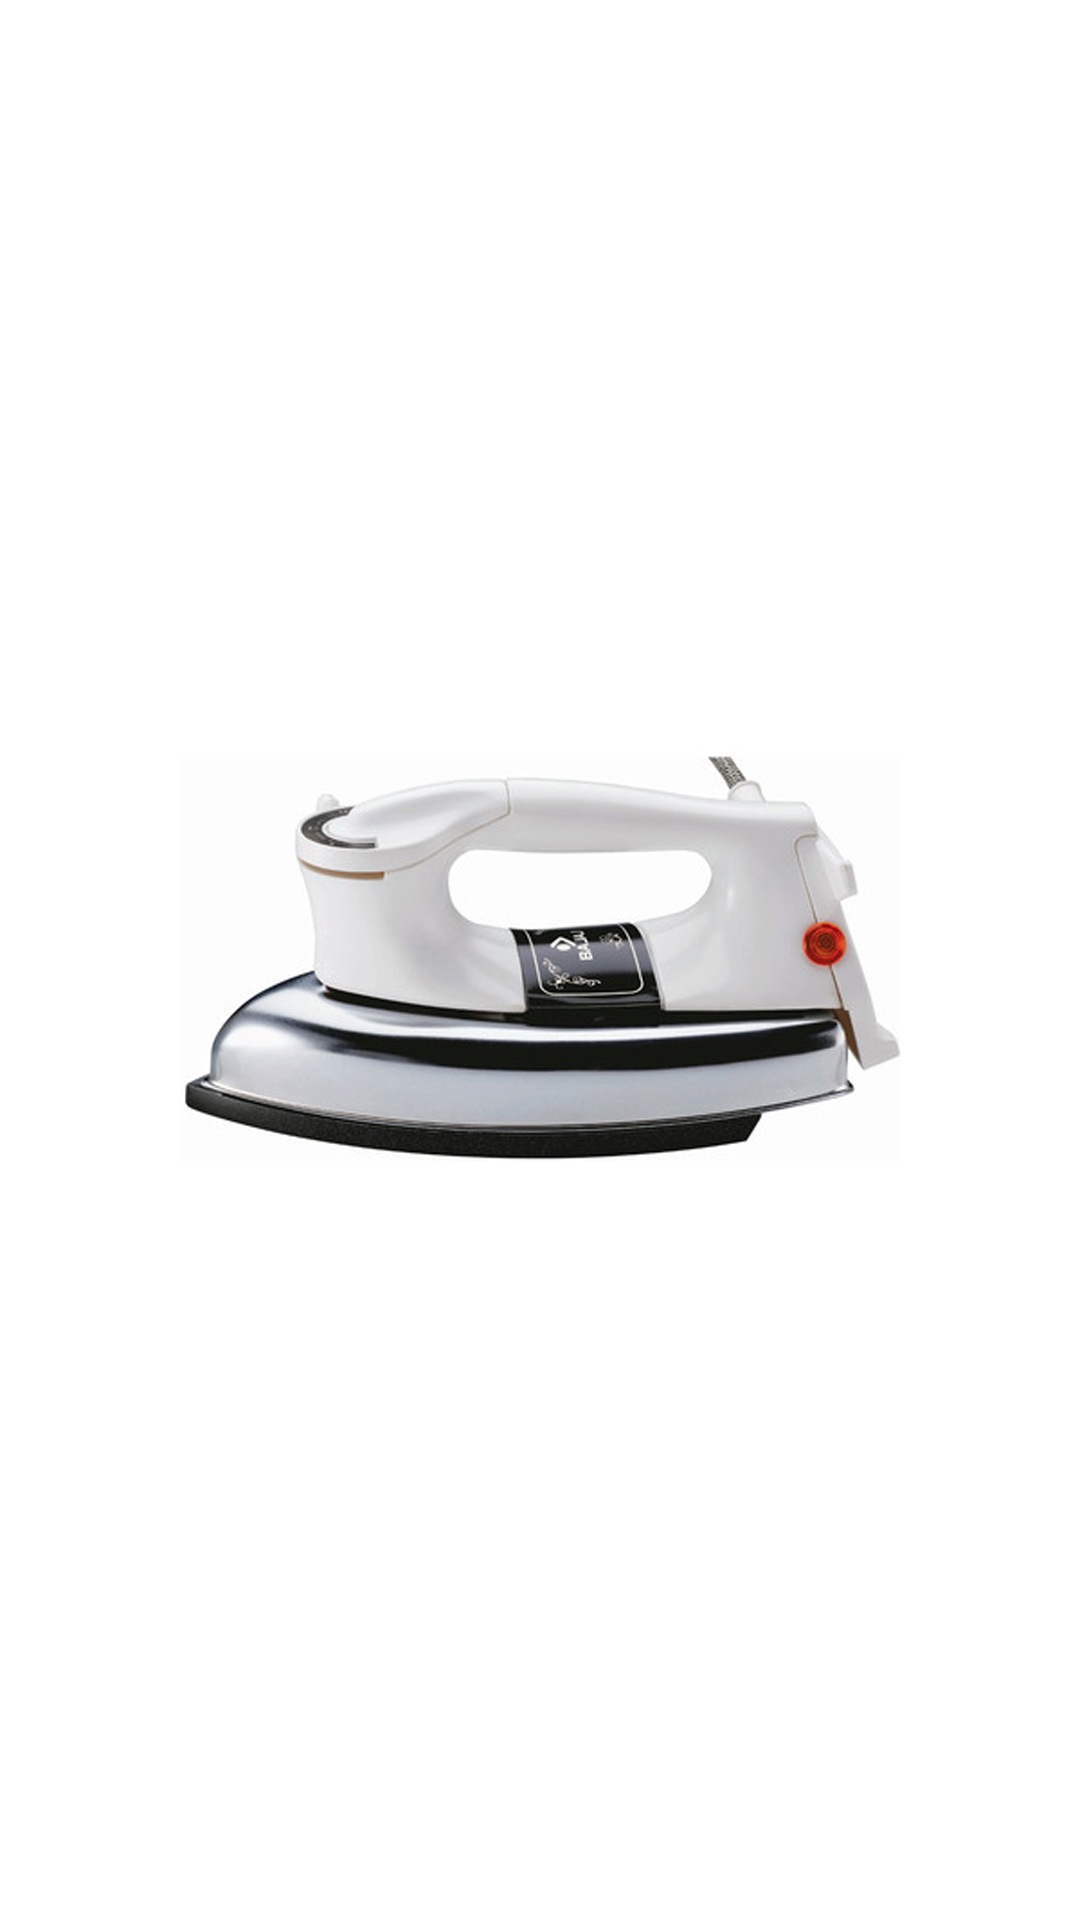 Bajaj Majesty DHX 9 750 W Dry Iron (White)